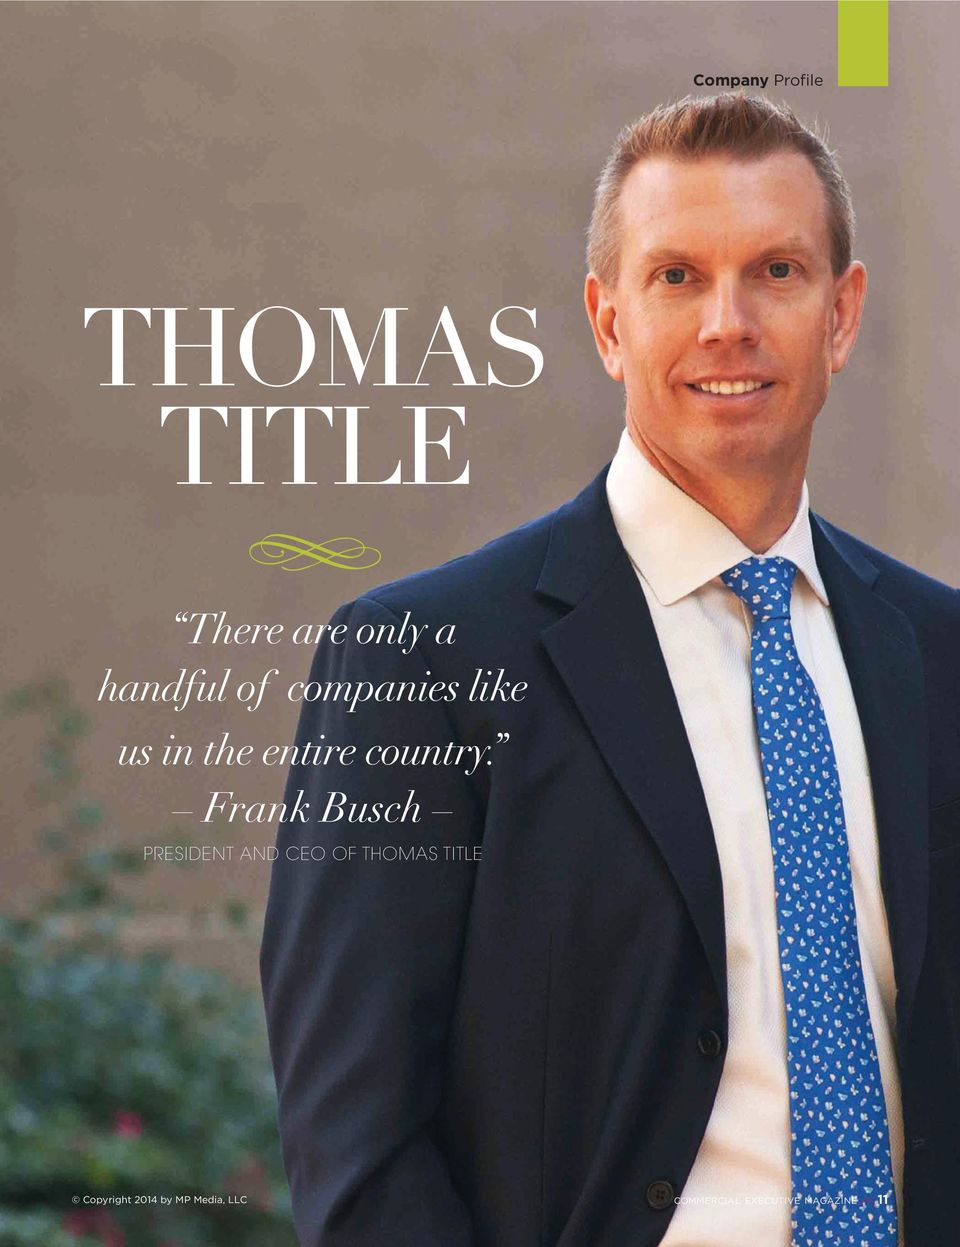 Frank Busch PRESIDENT AND CEO OF THOMAS TITLE